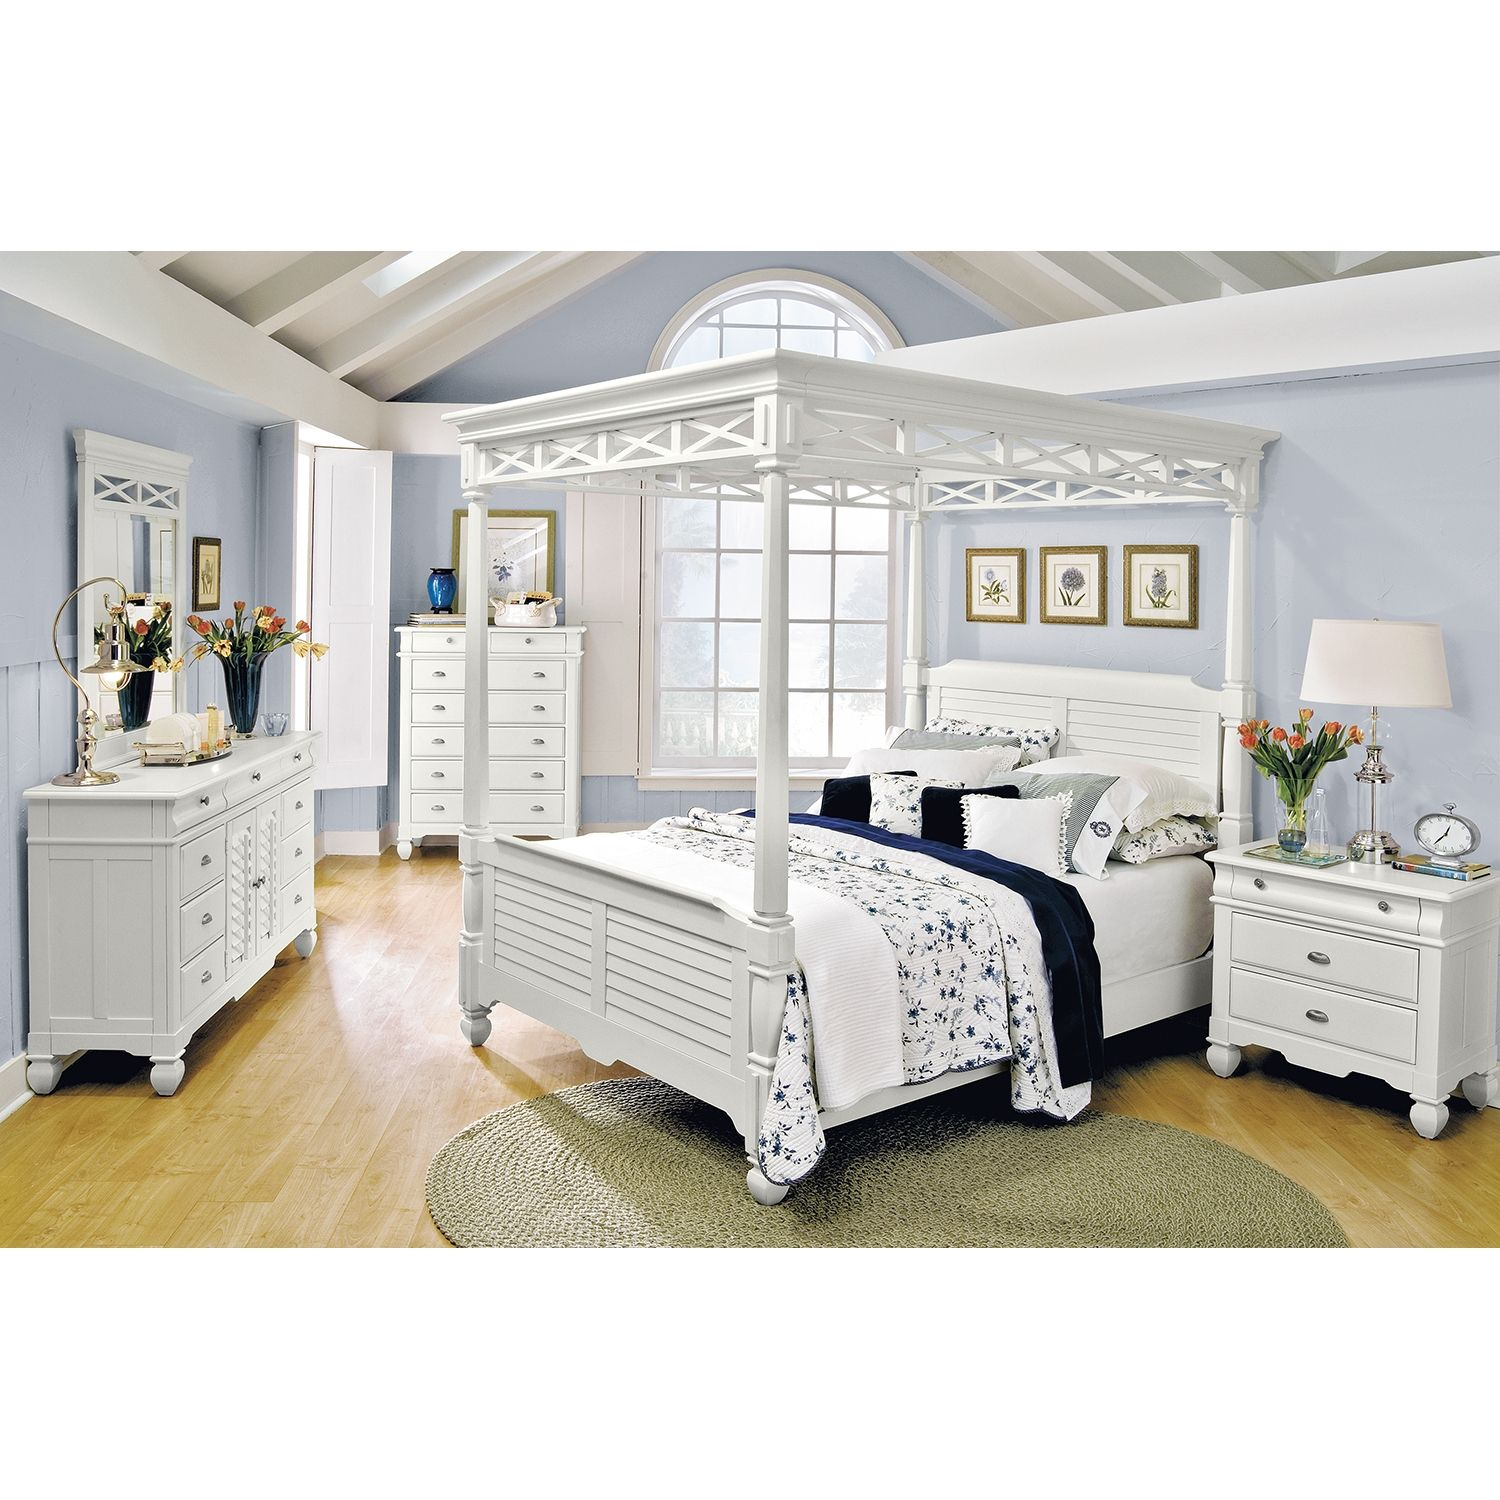 Coveted Choice. Our Plantation Cove White Canopy Queen bed is fresh ...